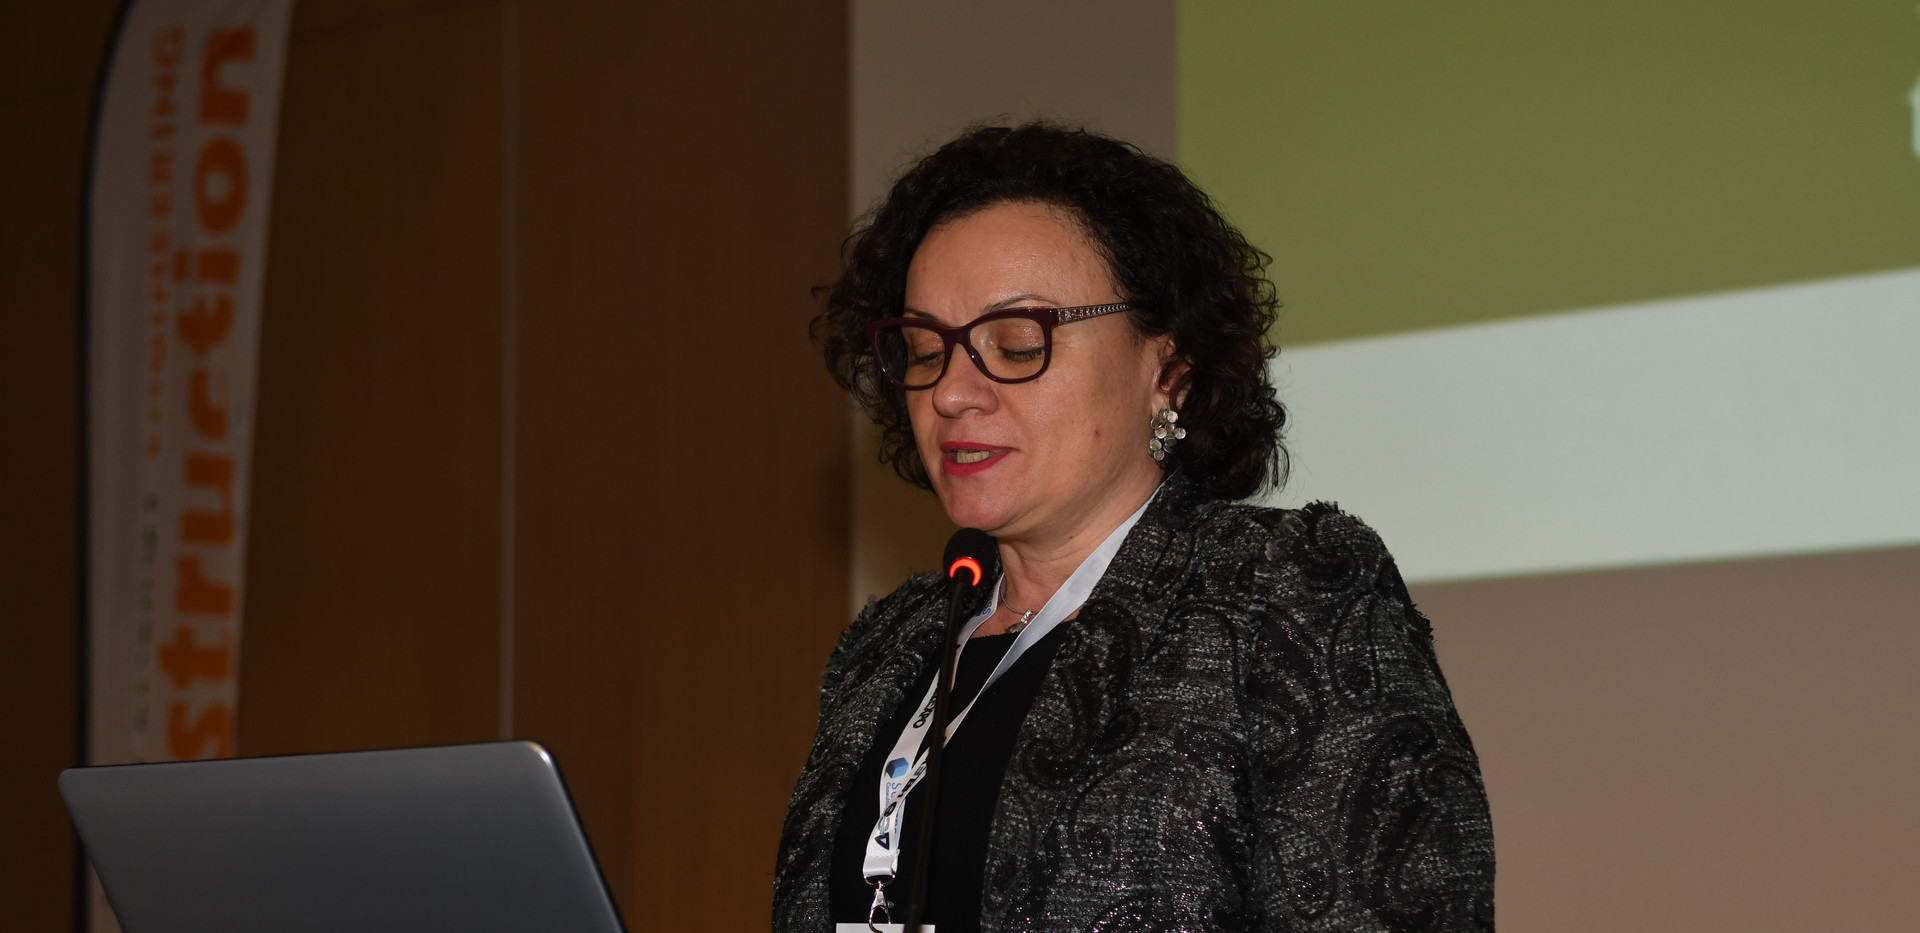 Ivelina Vasileva, Chair of the Environment Committee of the Bulgarian Parliament, f. Minister of Environment